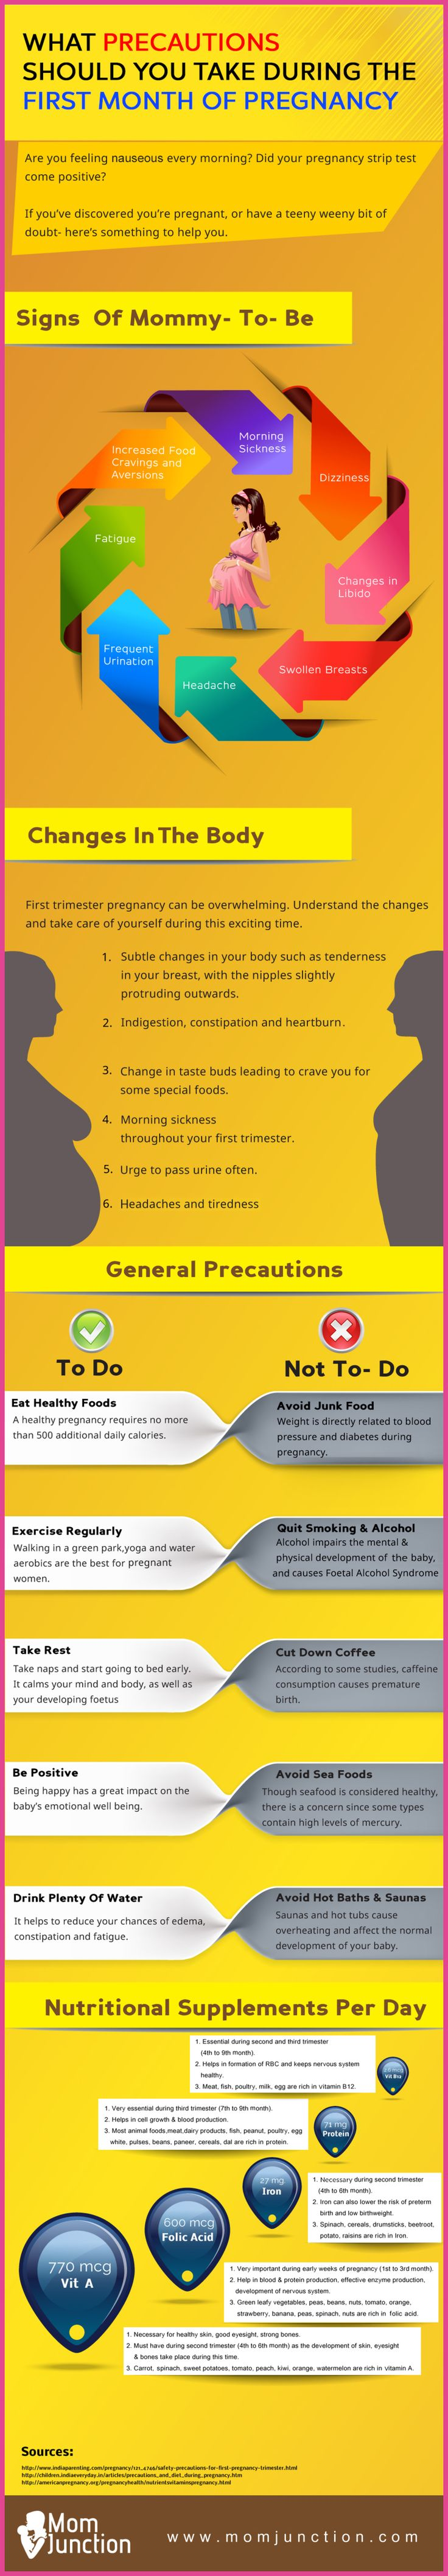 [Pregnancy Symptoms] What Are the Early Pregnancy Symptoms - The First 5 Signs of Pregnancy * Click image for more details. #stylethebump